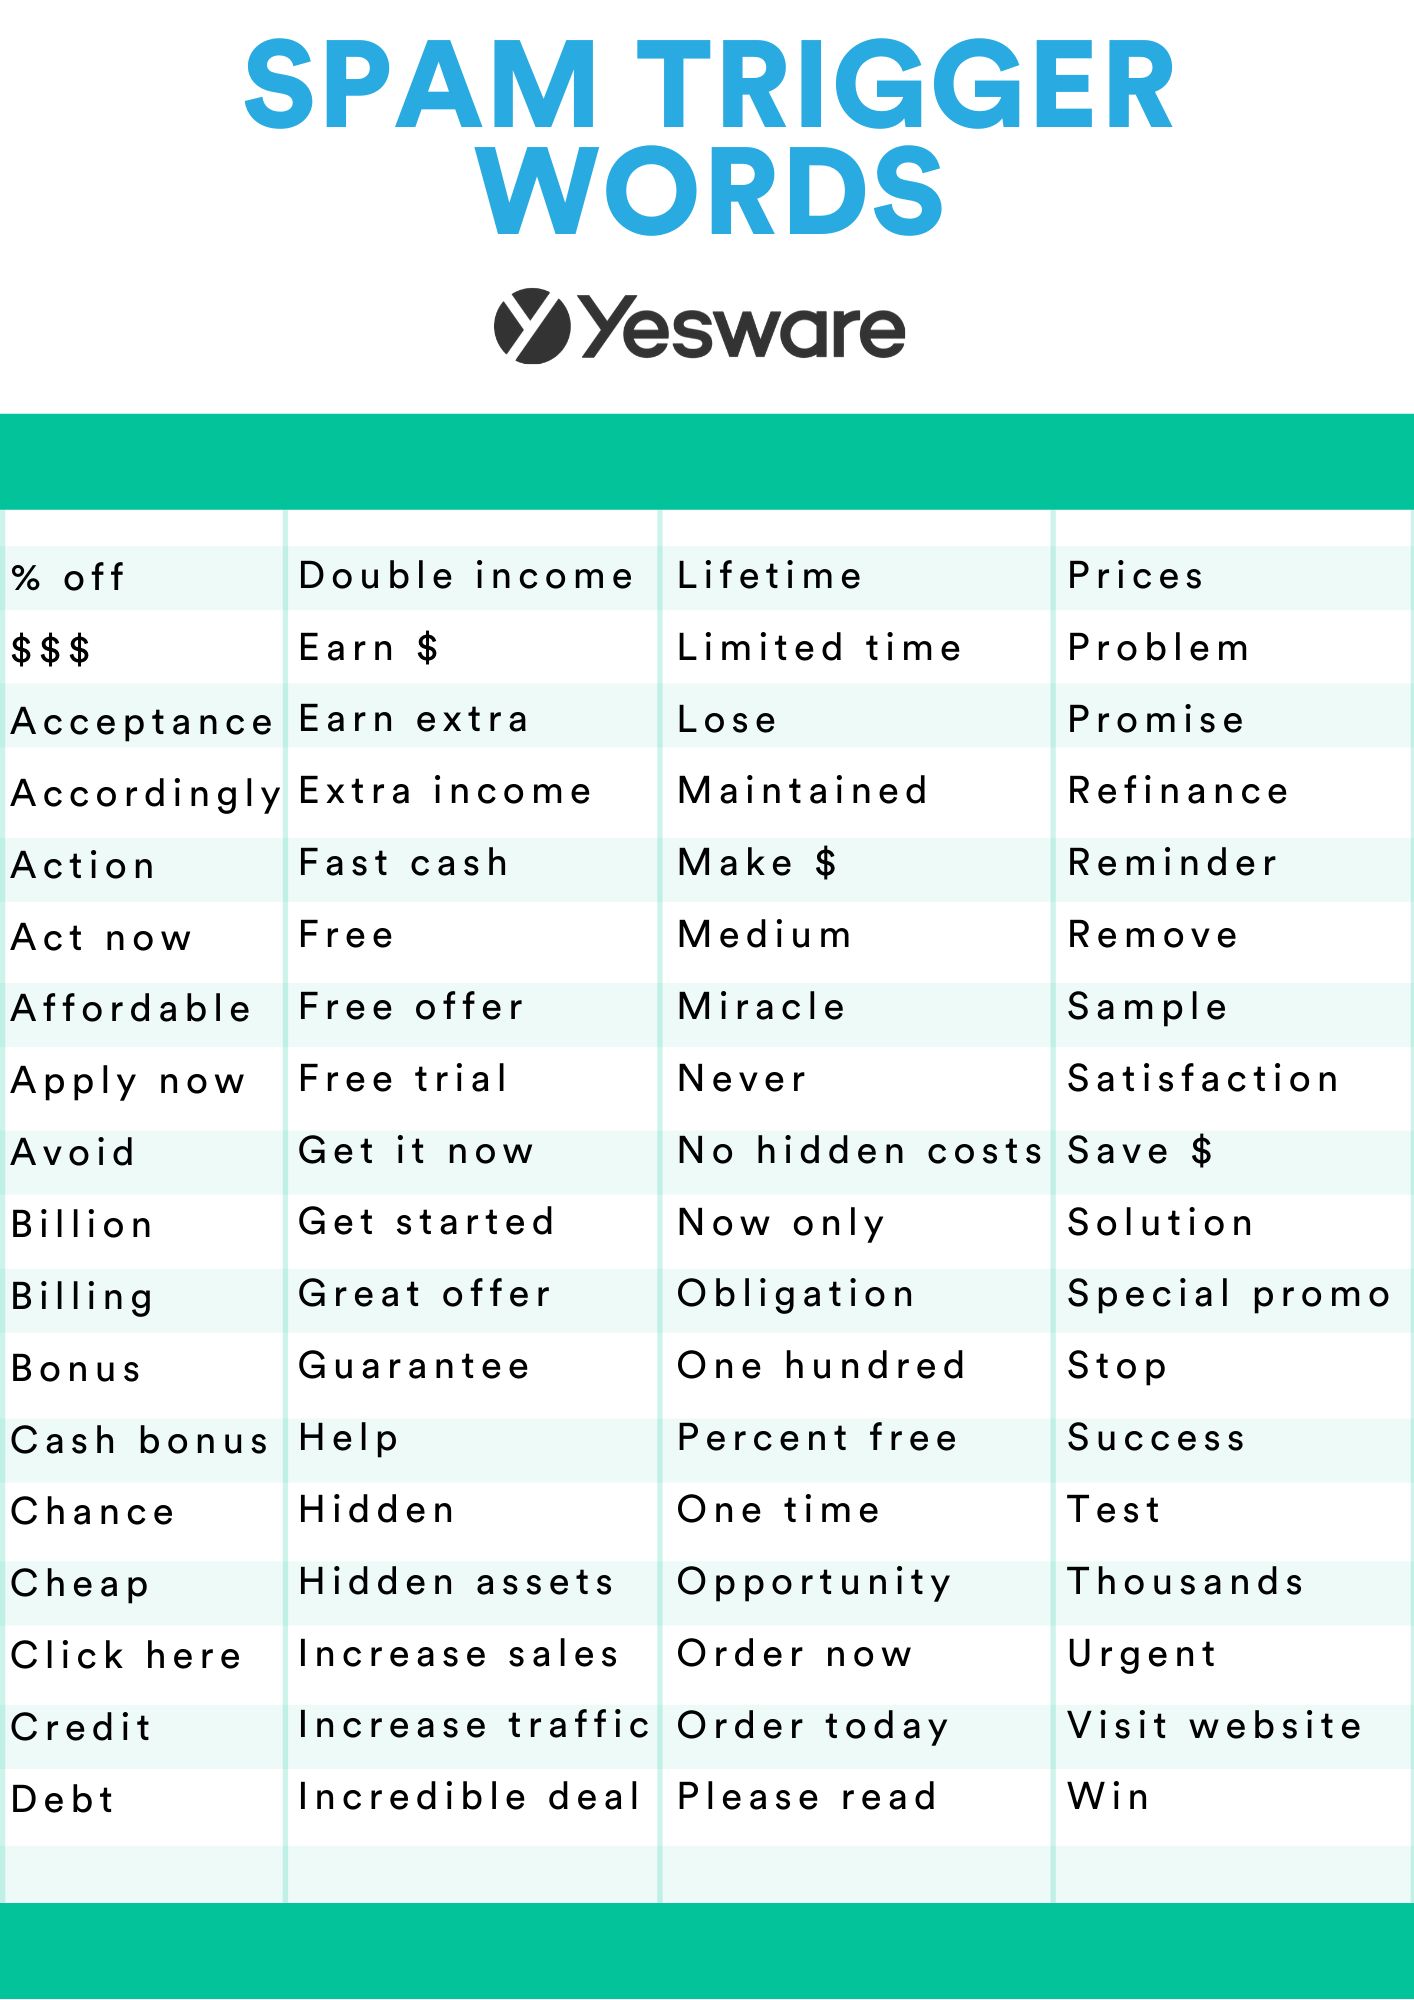 Dados do Yesware: Spam Trigger Words